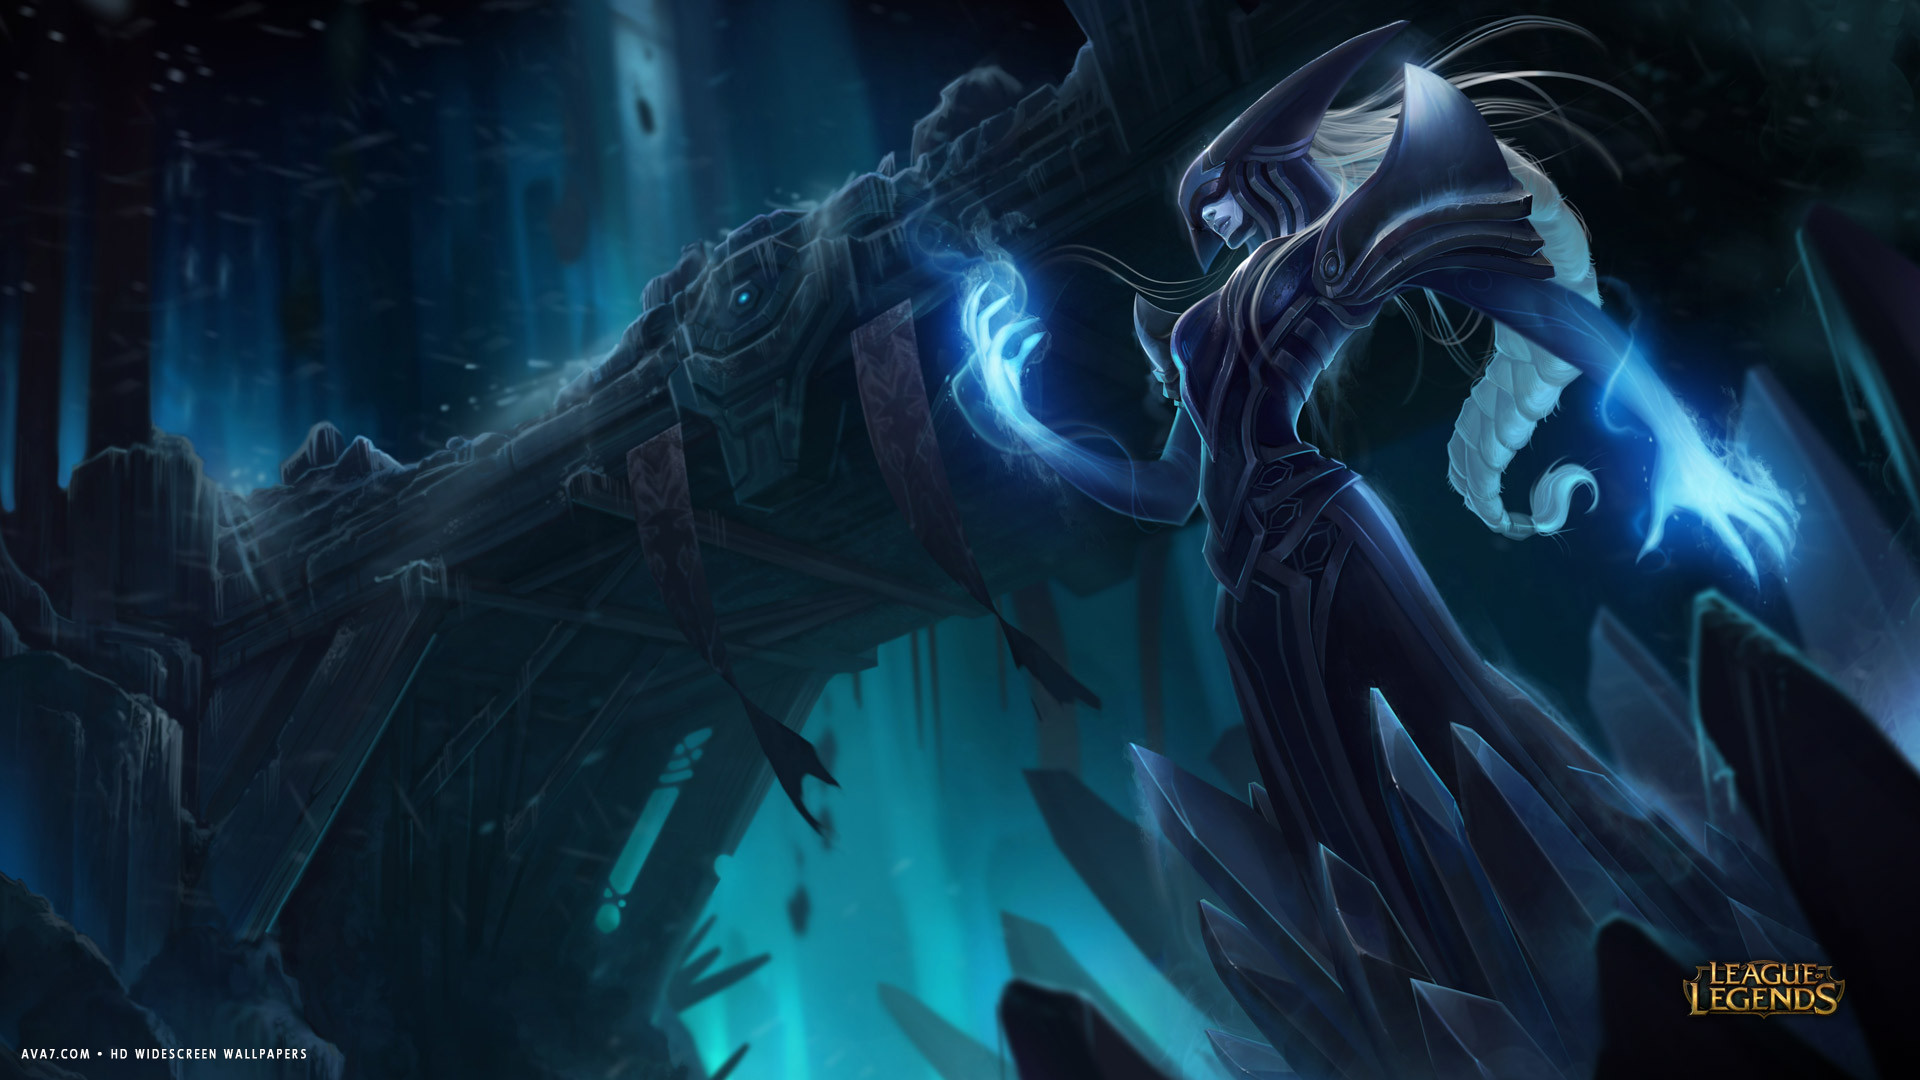 league of legends game lol lissandra hd widescreen wallpaper